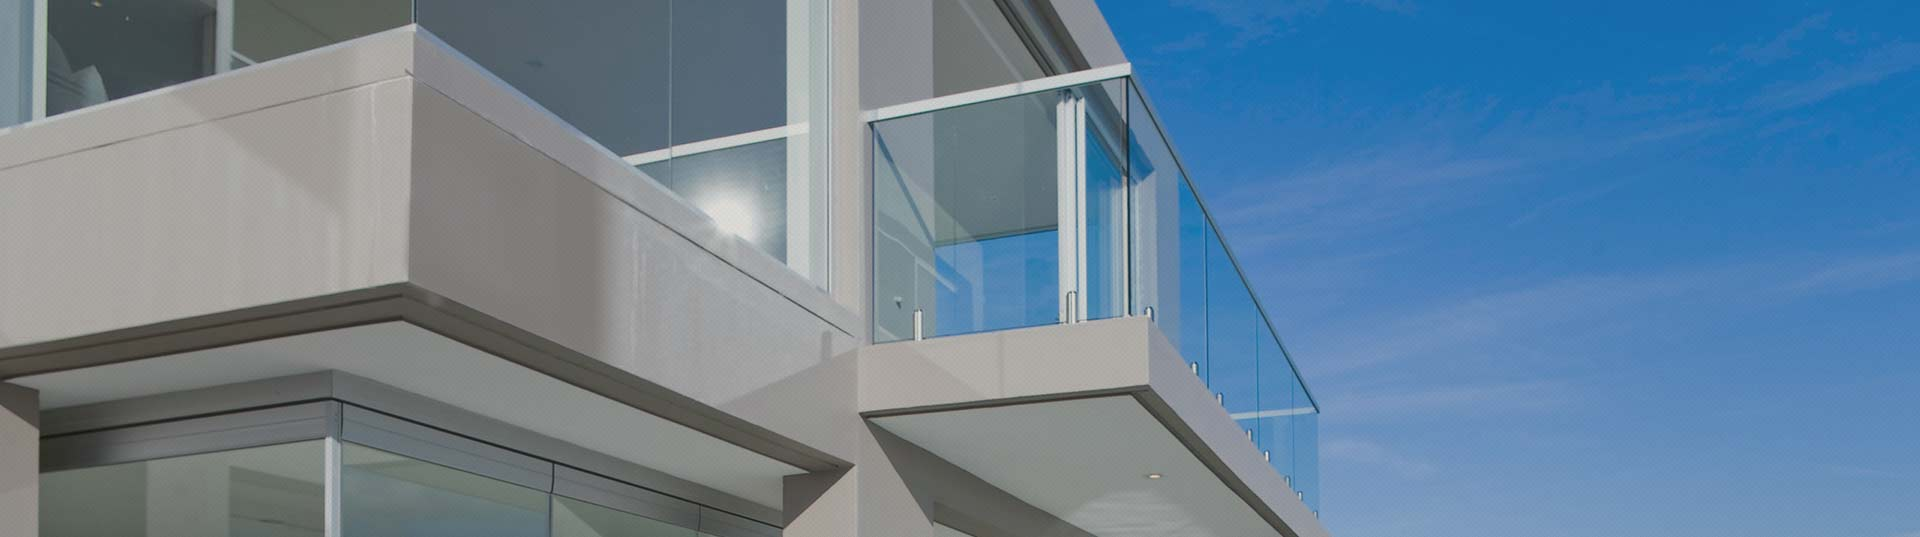 Balustrades Buyers Guide